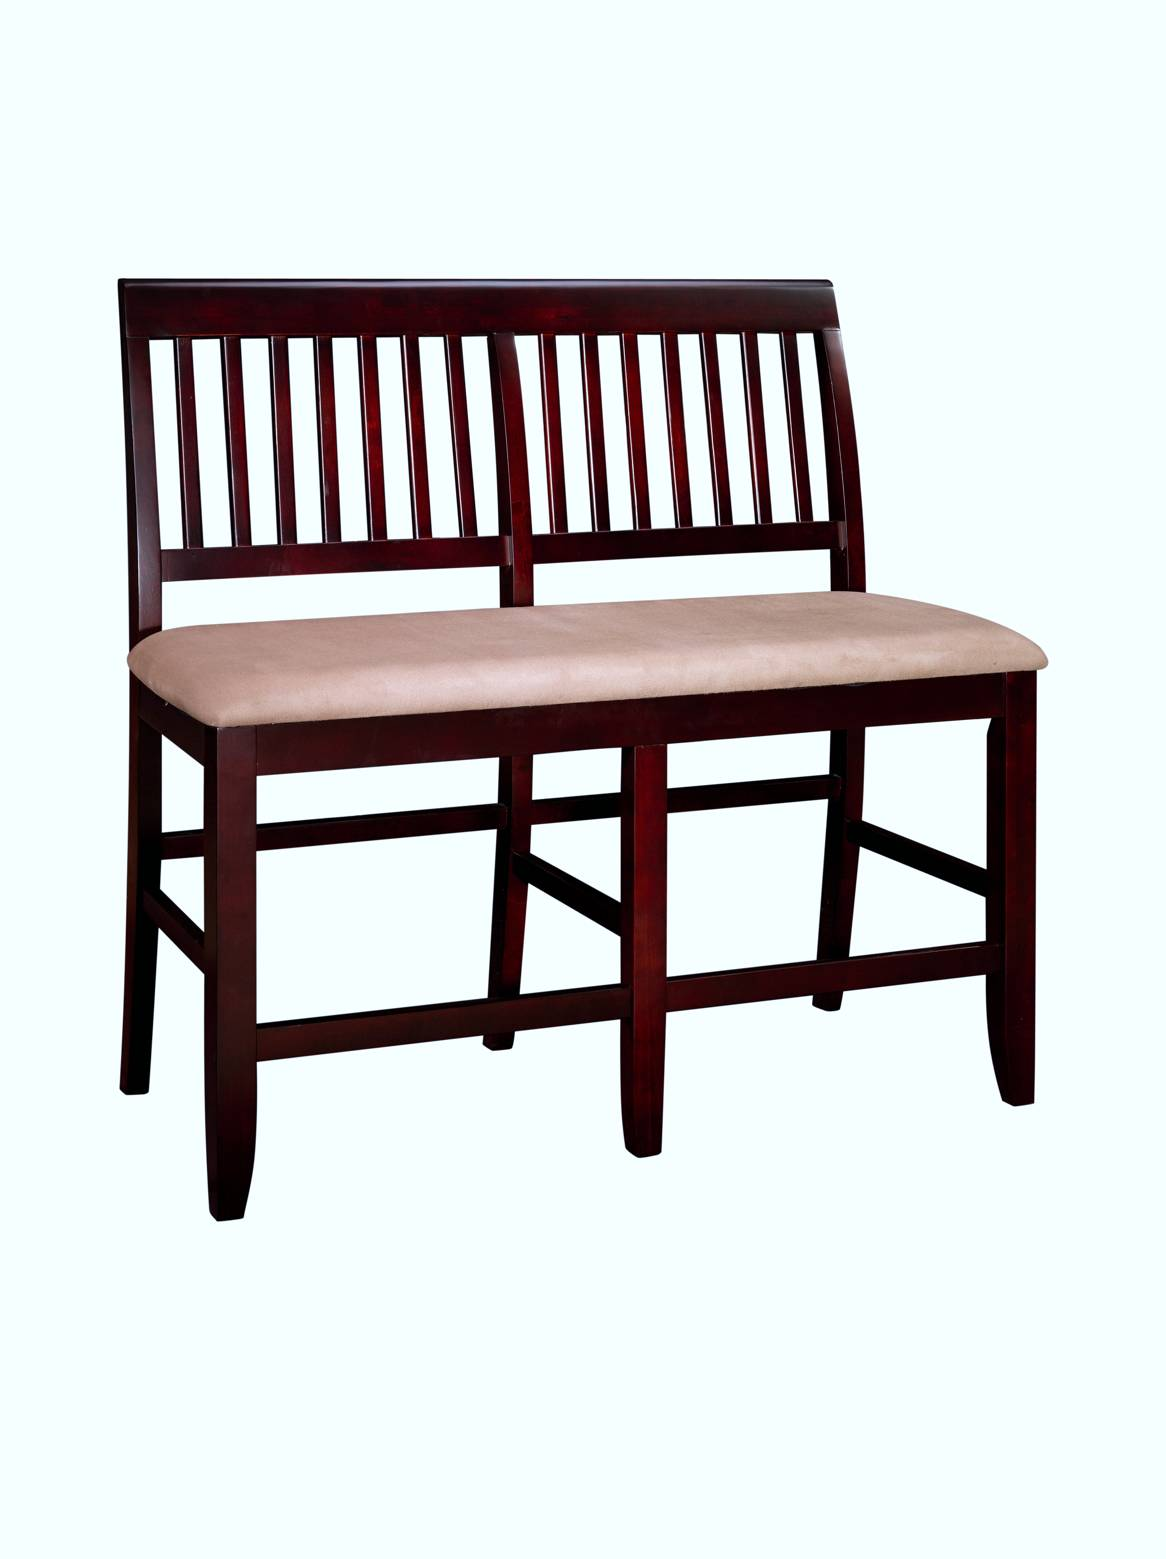 New classic furniture brendan dining room set bench seat for Dining room sets with bench seat